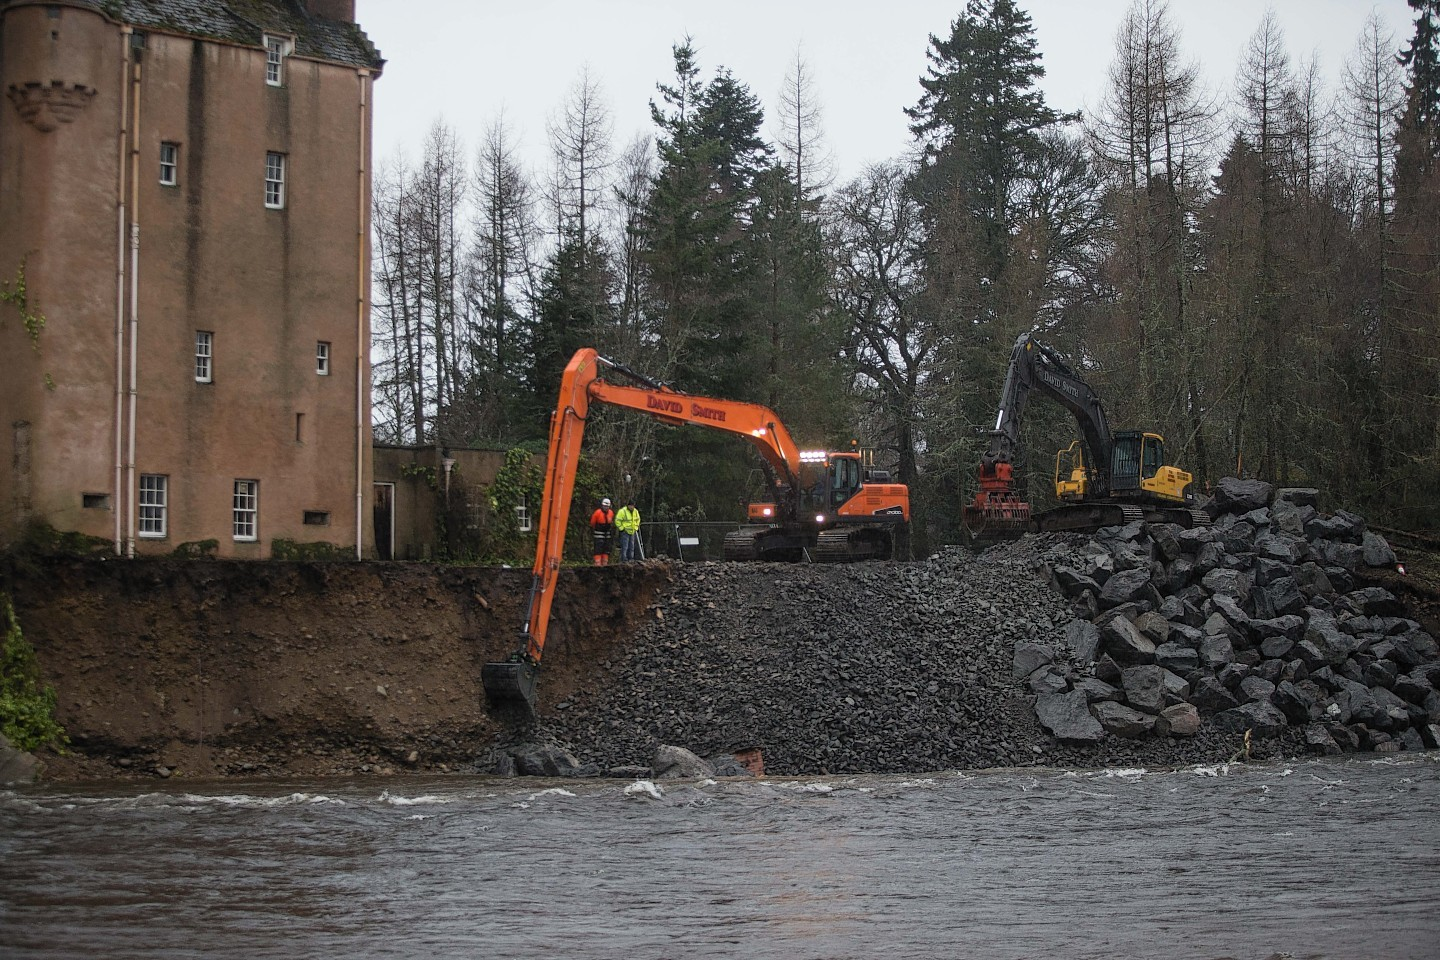 Boulders are placed by the castle in an effort to protect the historic building from the river